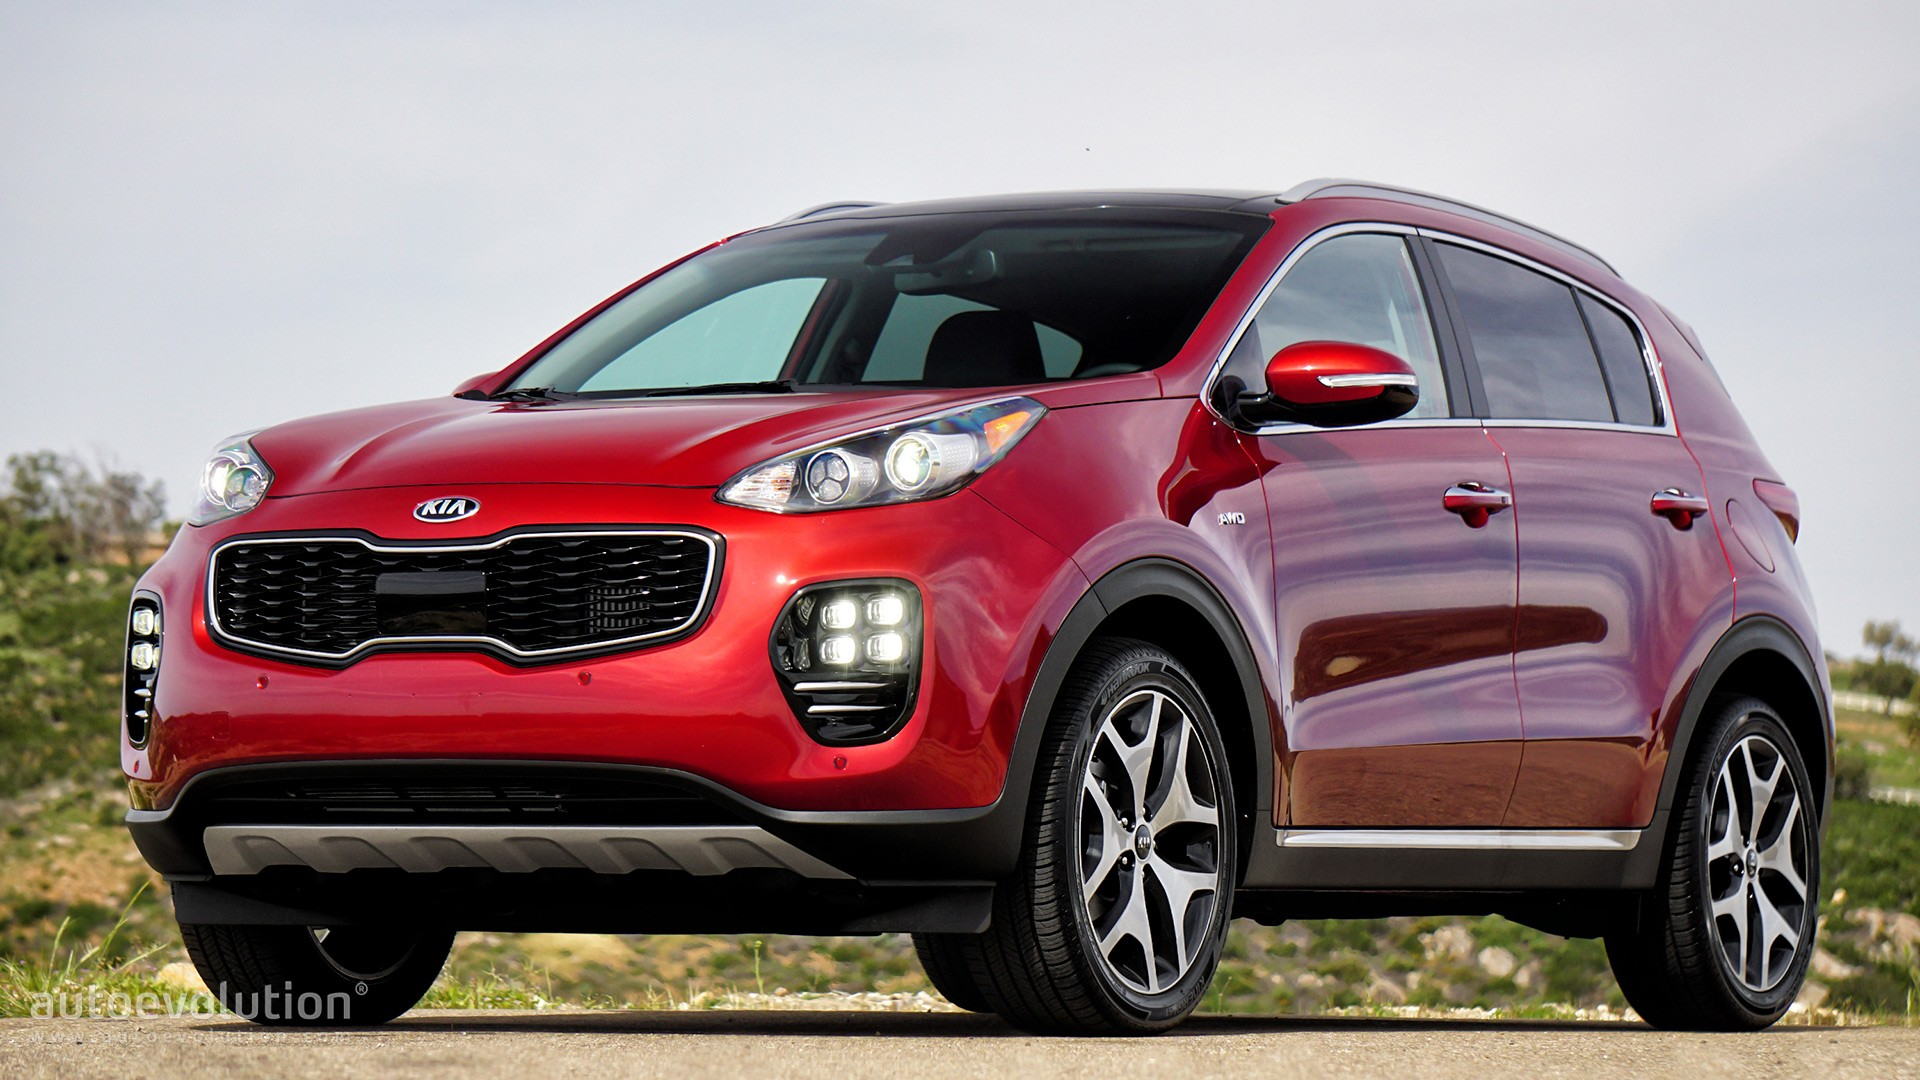 2017 Kia Sportage Review - autoevolution